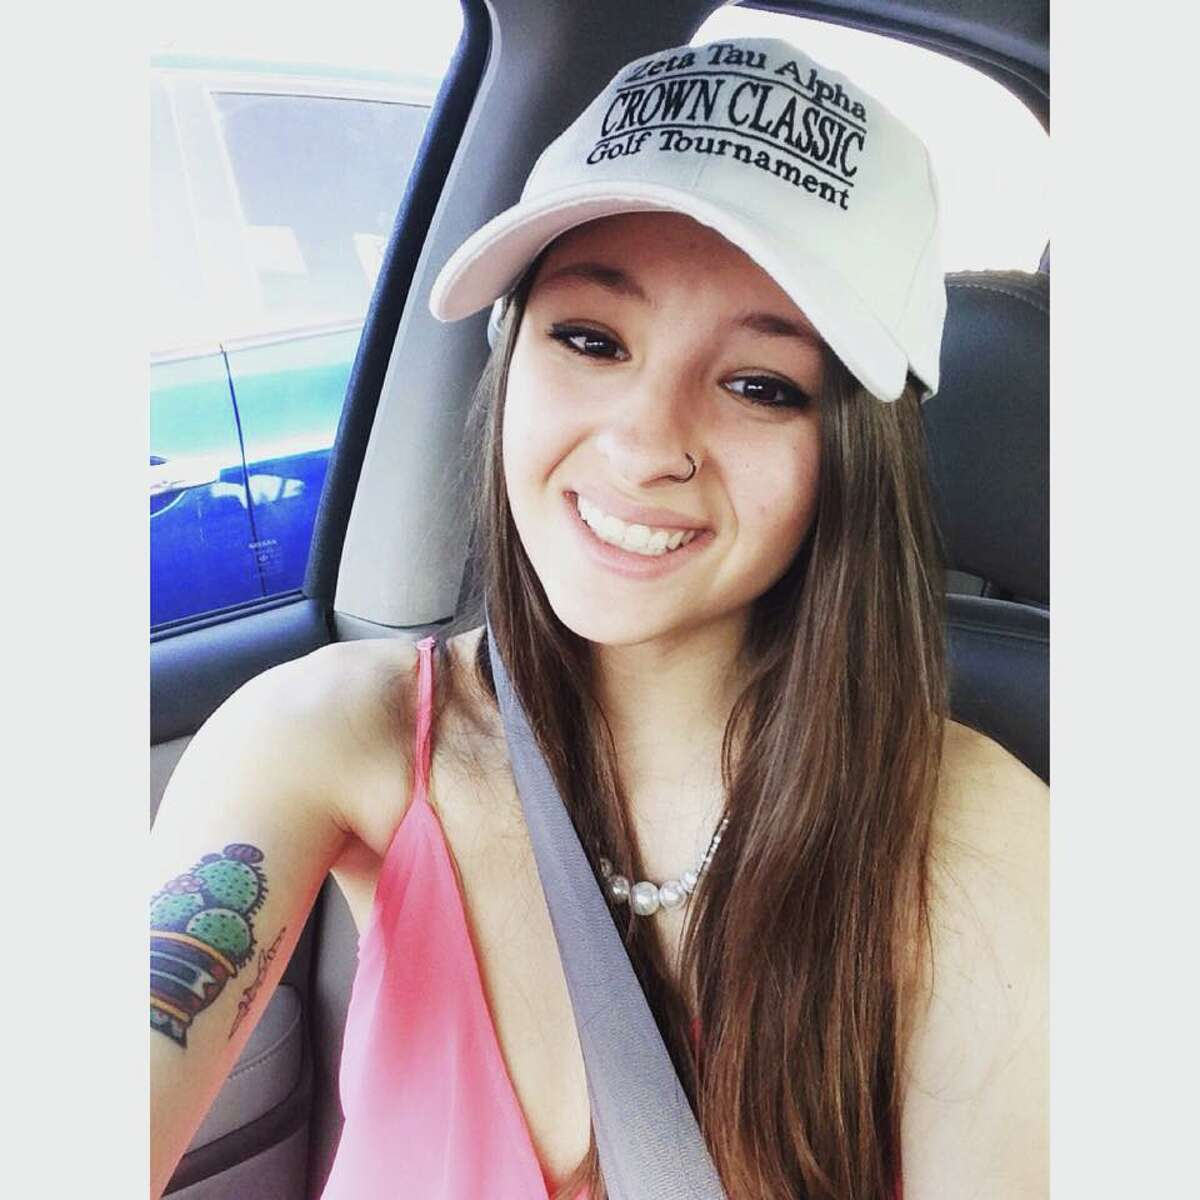 Sara Mutschlechner, a 20-year-old University of North Texas student from the San Marcos area, was shot and killed during a traffic altercation after a New Year's Eve party on Jan. 1, 2016, in Denton.